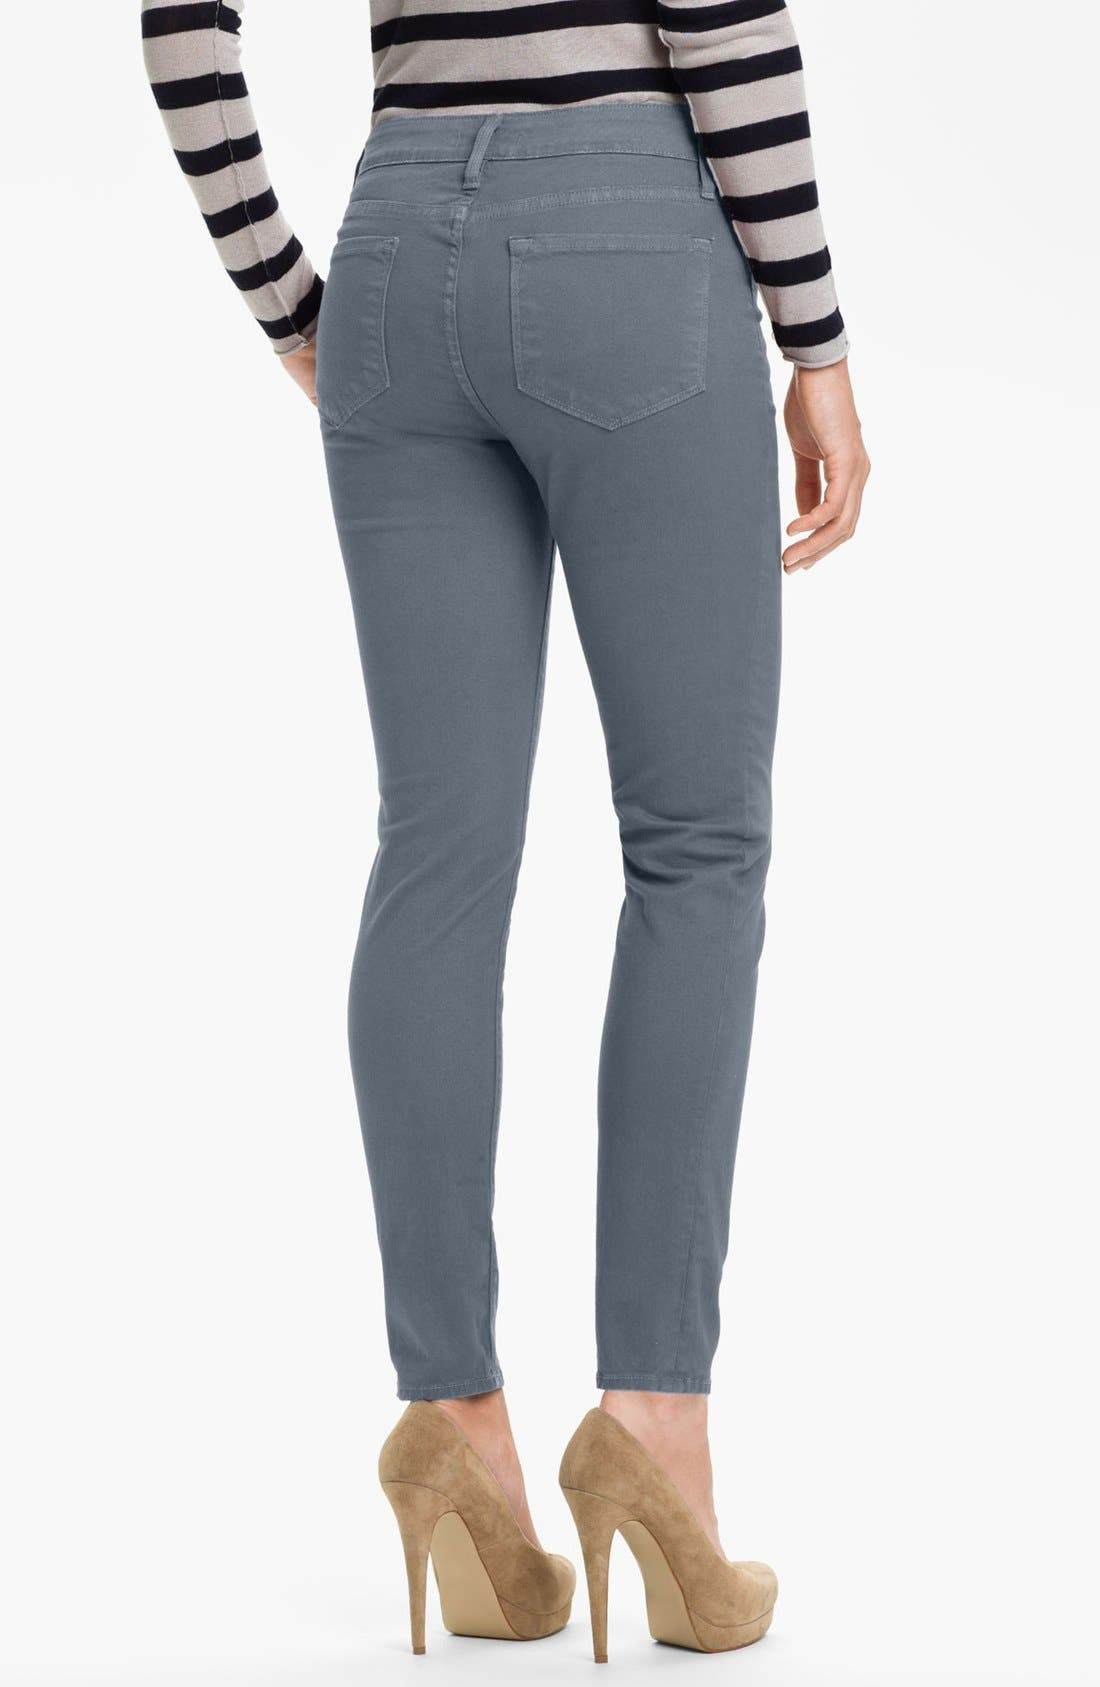 Alternate Image 2  - Blue Essence Skinny Twill Ankle Jeans (Nordstrom Exclusive)